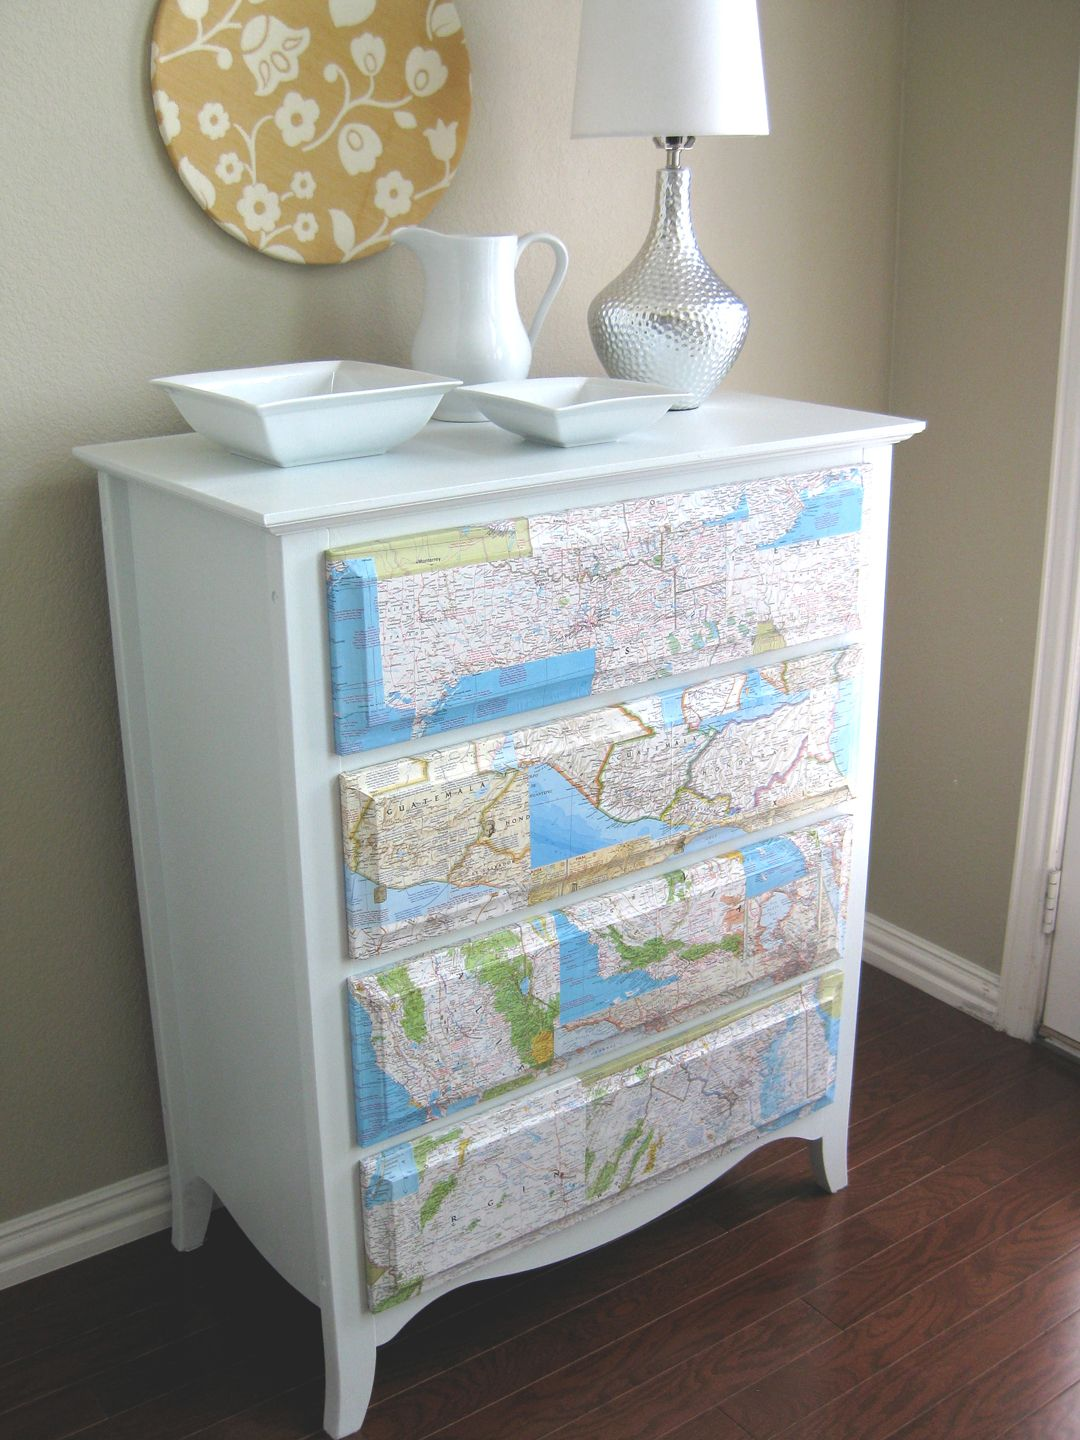 Diy College Apartment Ideas Bed Table With Maps Guest Room